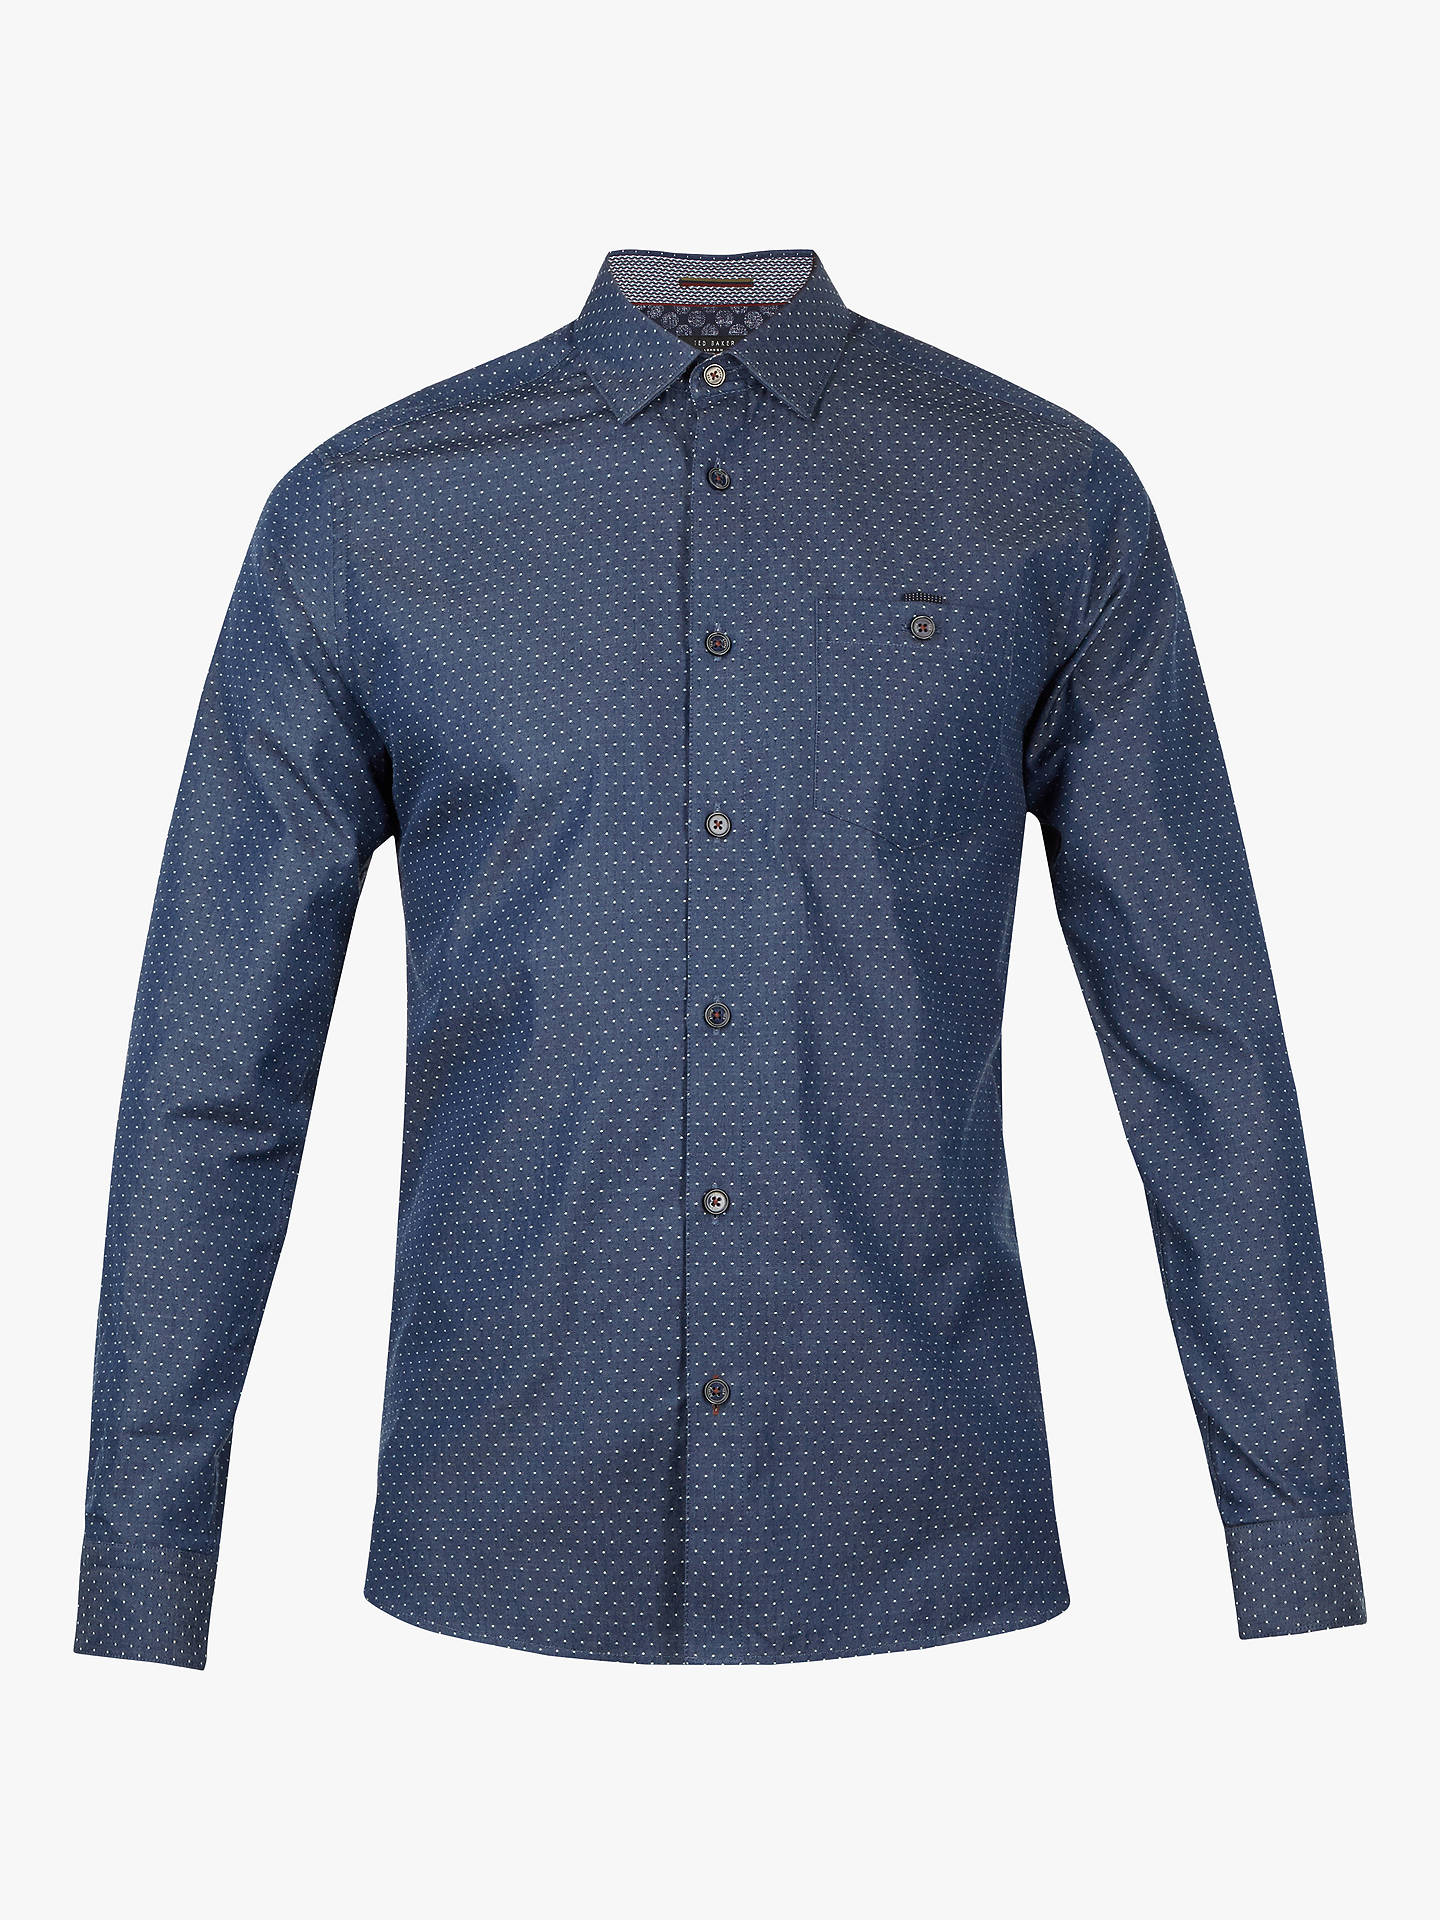 BuyTed Baker Birksey Dot Print Shirt, Navy, 15 Online at johnlewis.com